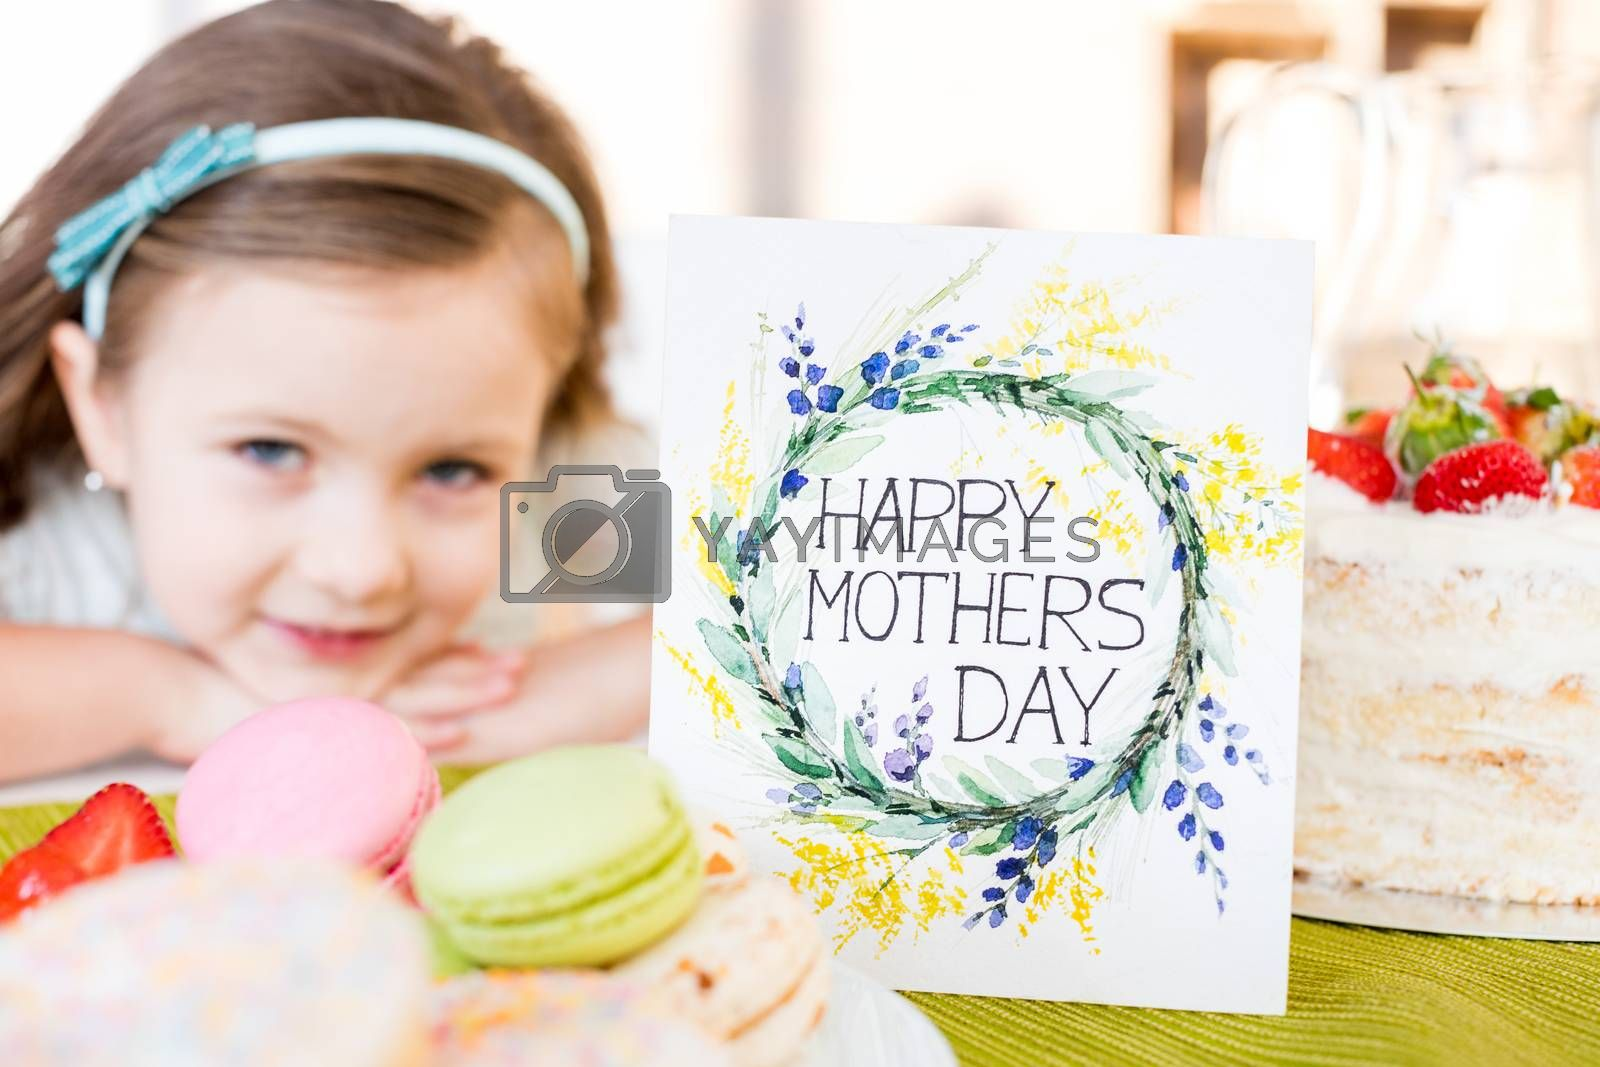 Happy mothers day greeting card by LightFieldStudios